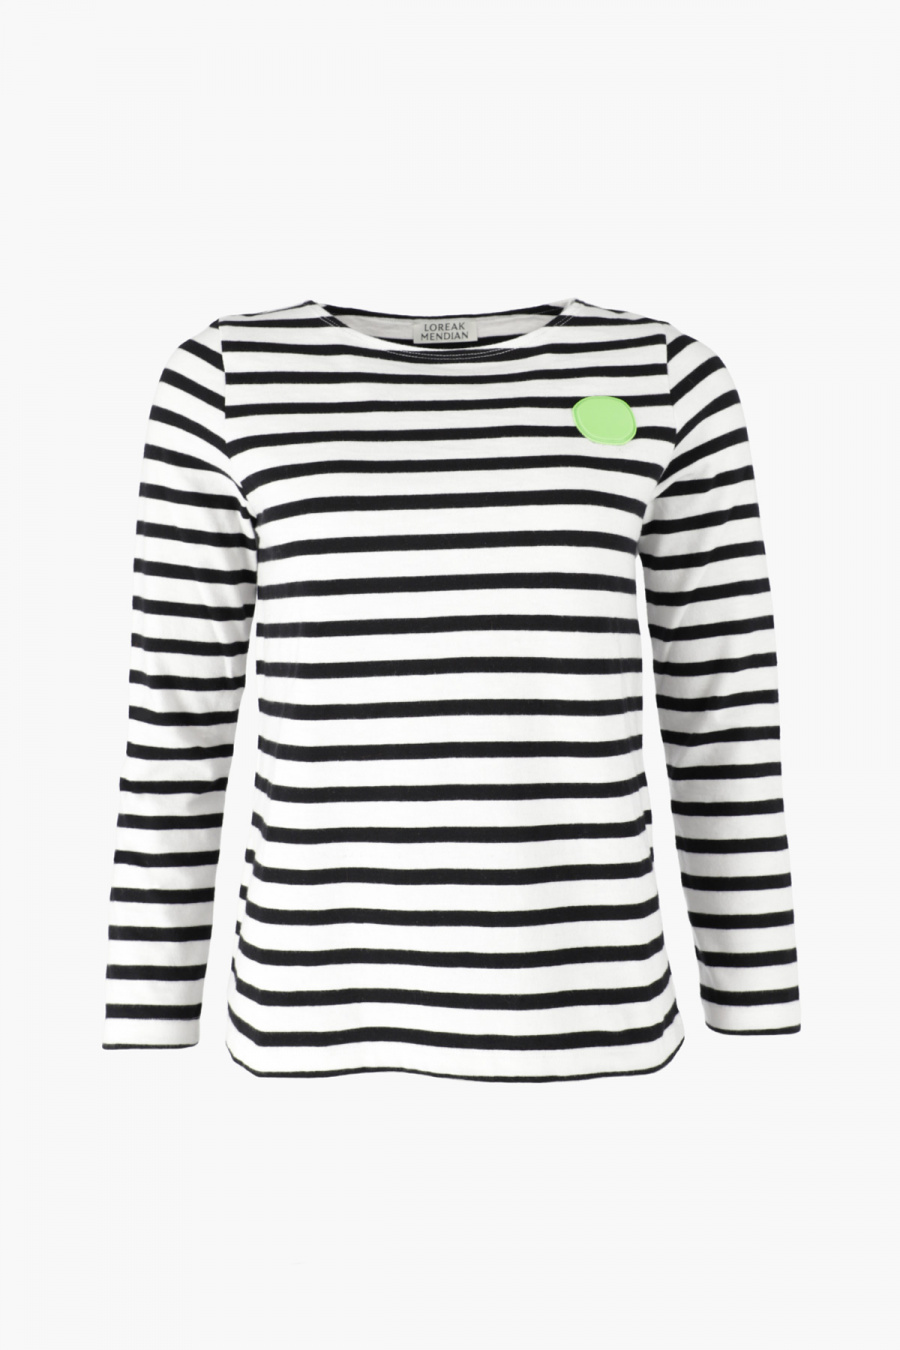 CAMISETA STRIPED DOTGUM